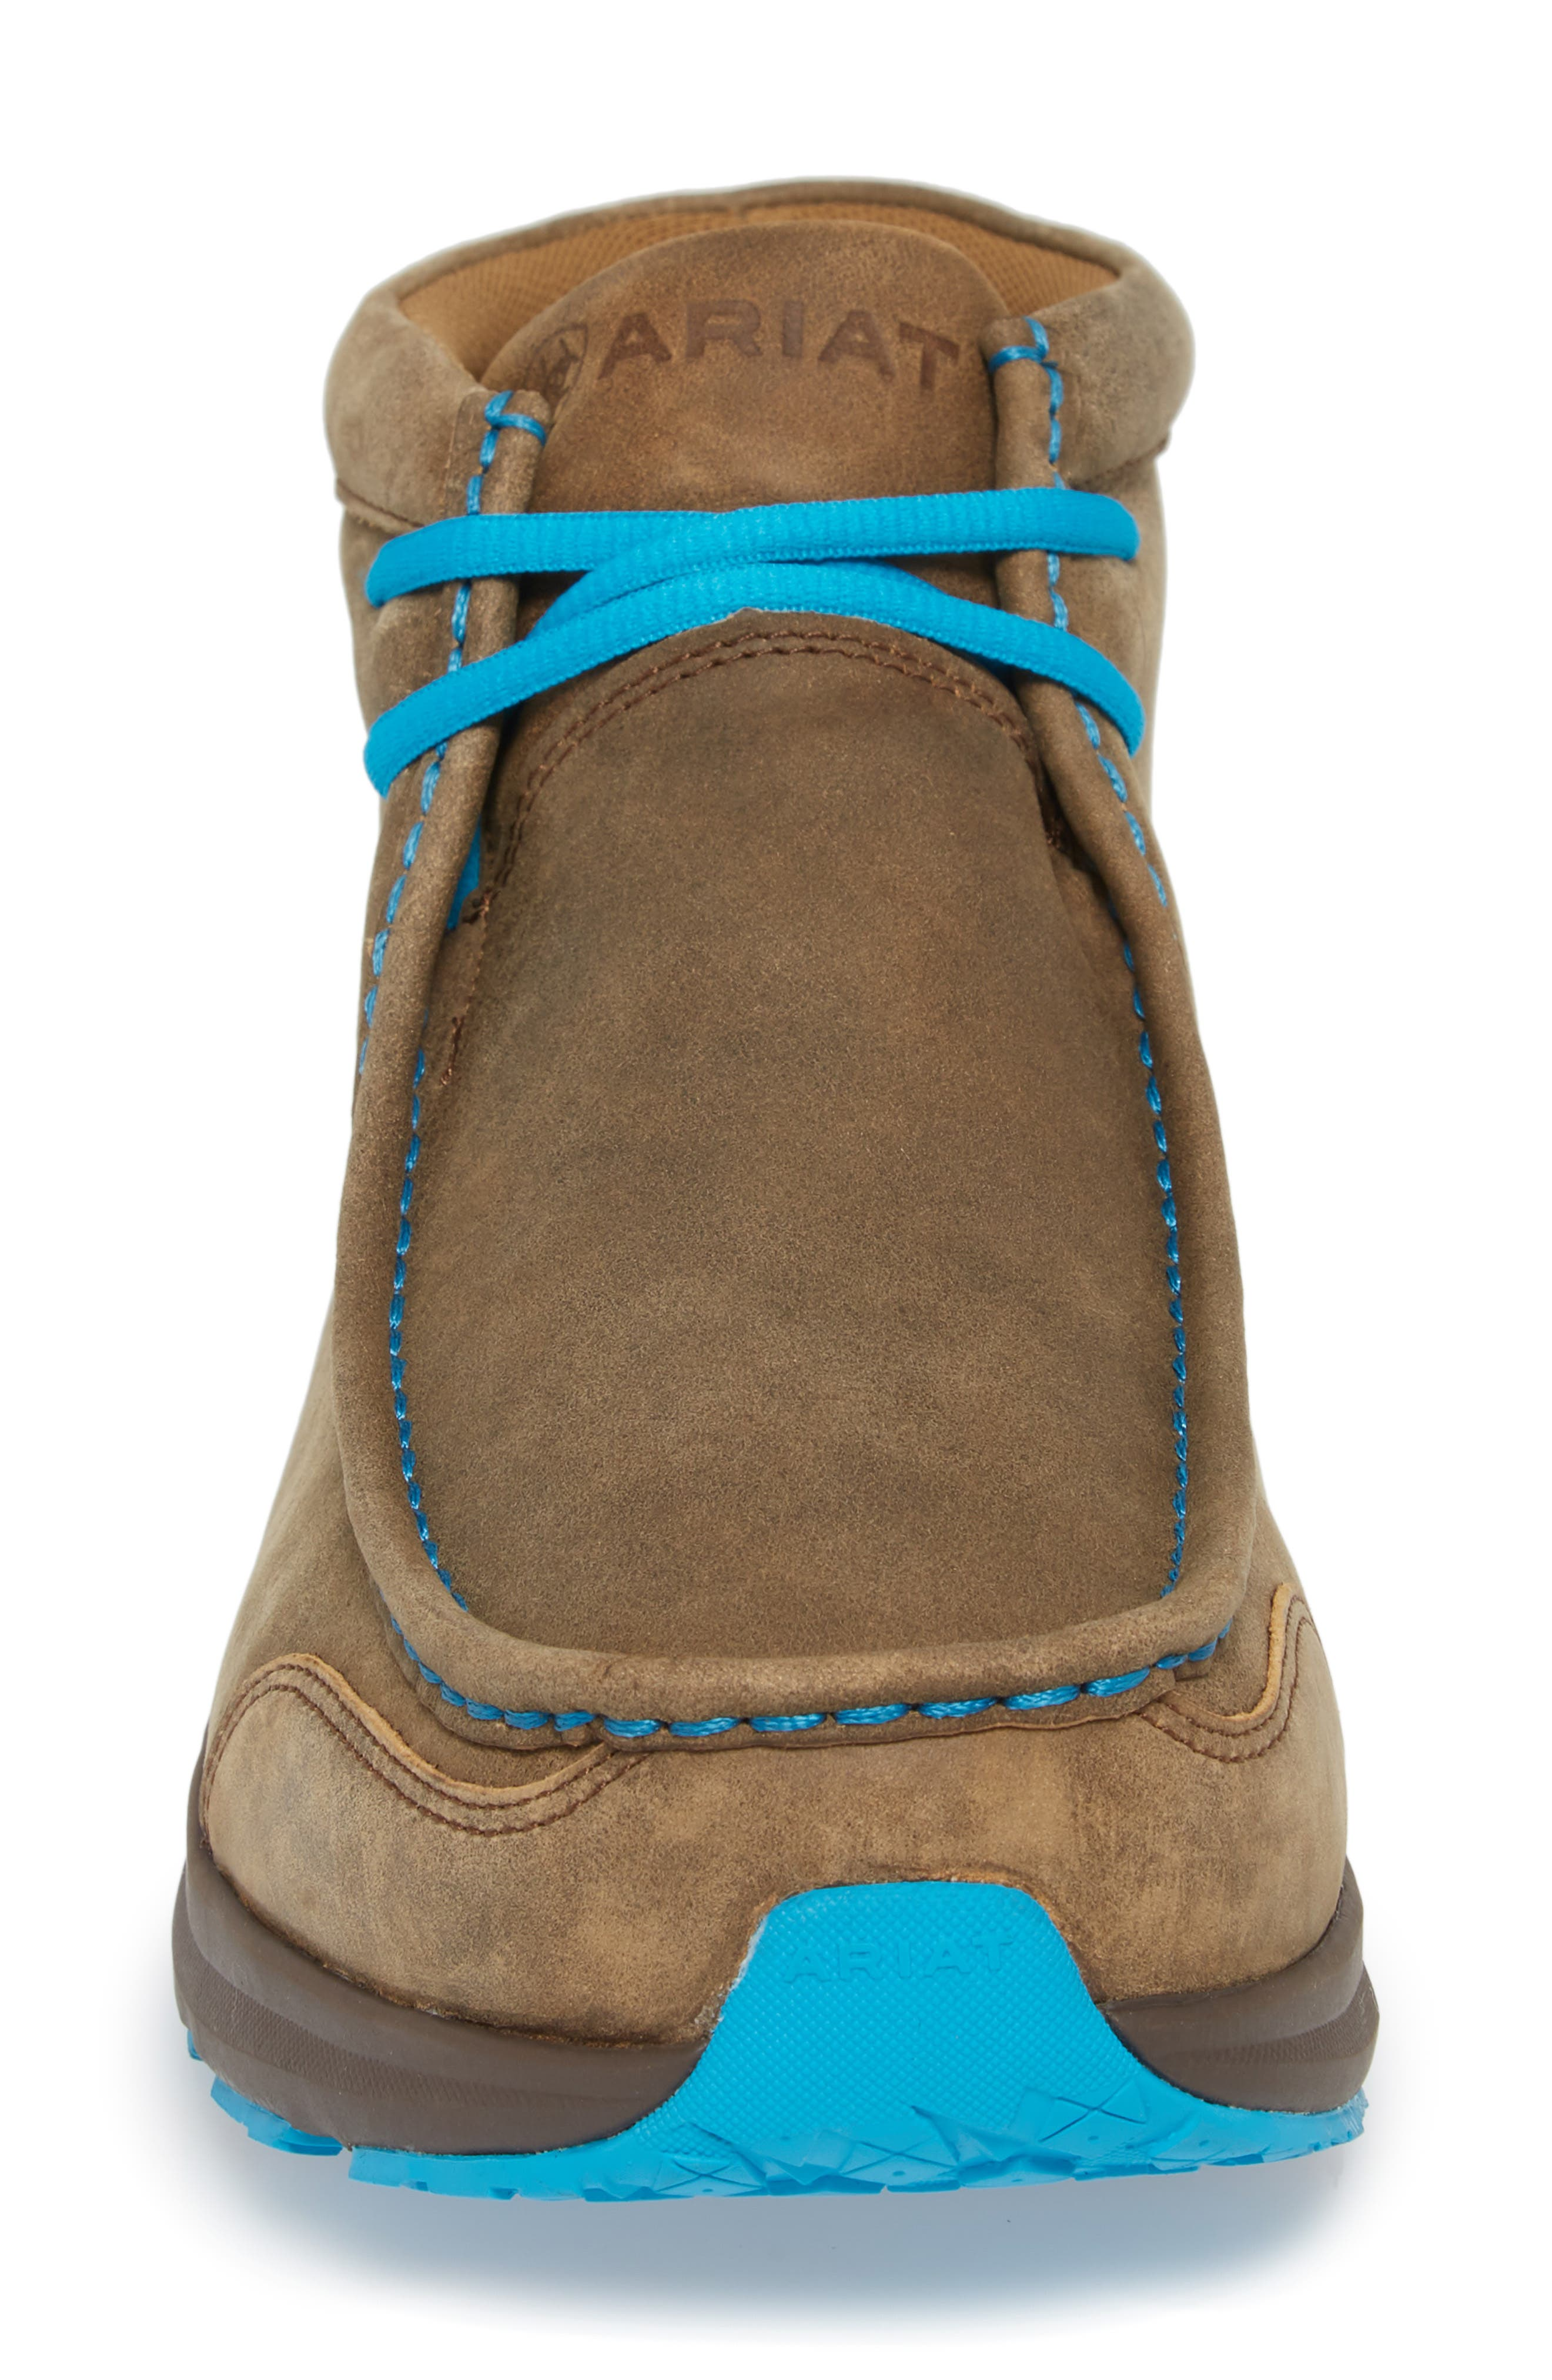 Spitfire Chukka Boot,                             Alternate thumbnail 4, color,                             BROWN BOMBER/ BLUE LEATHER